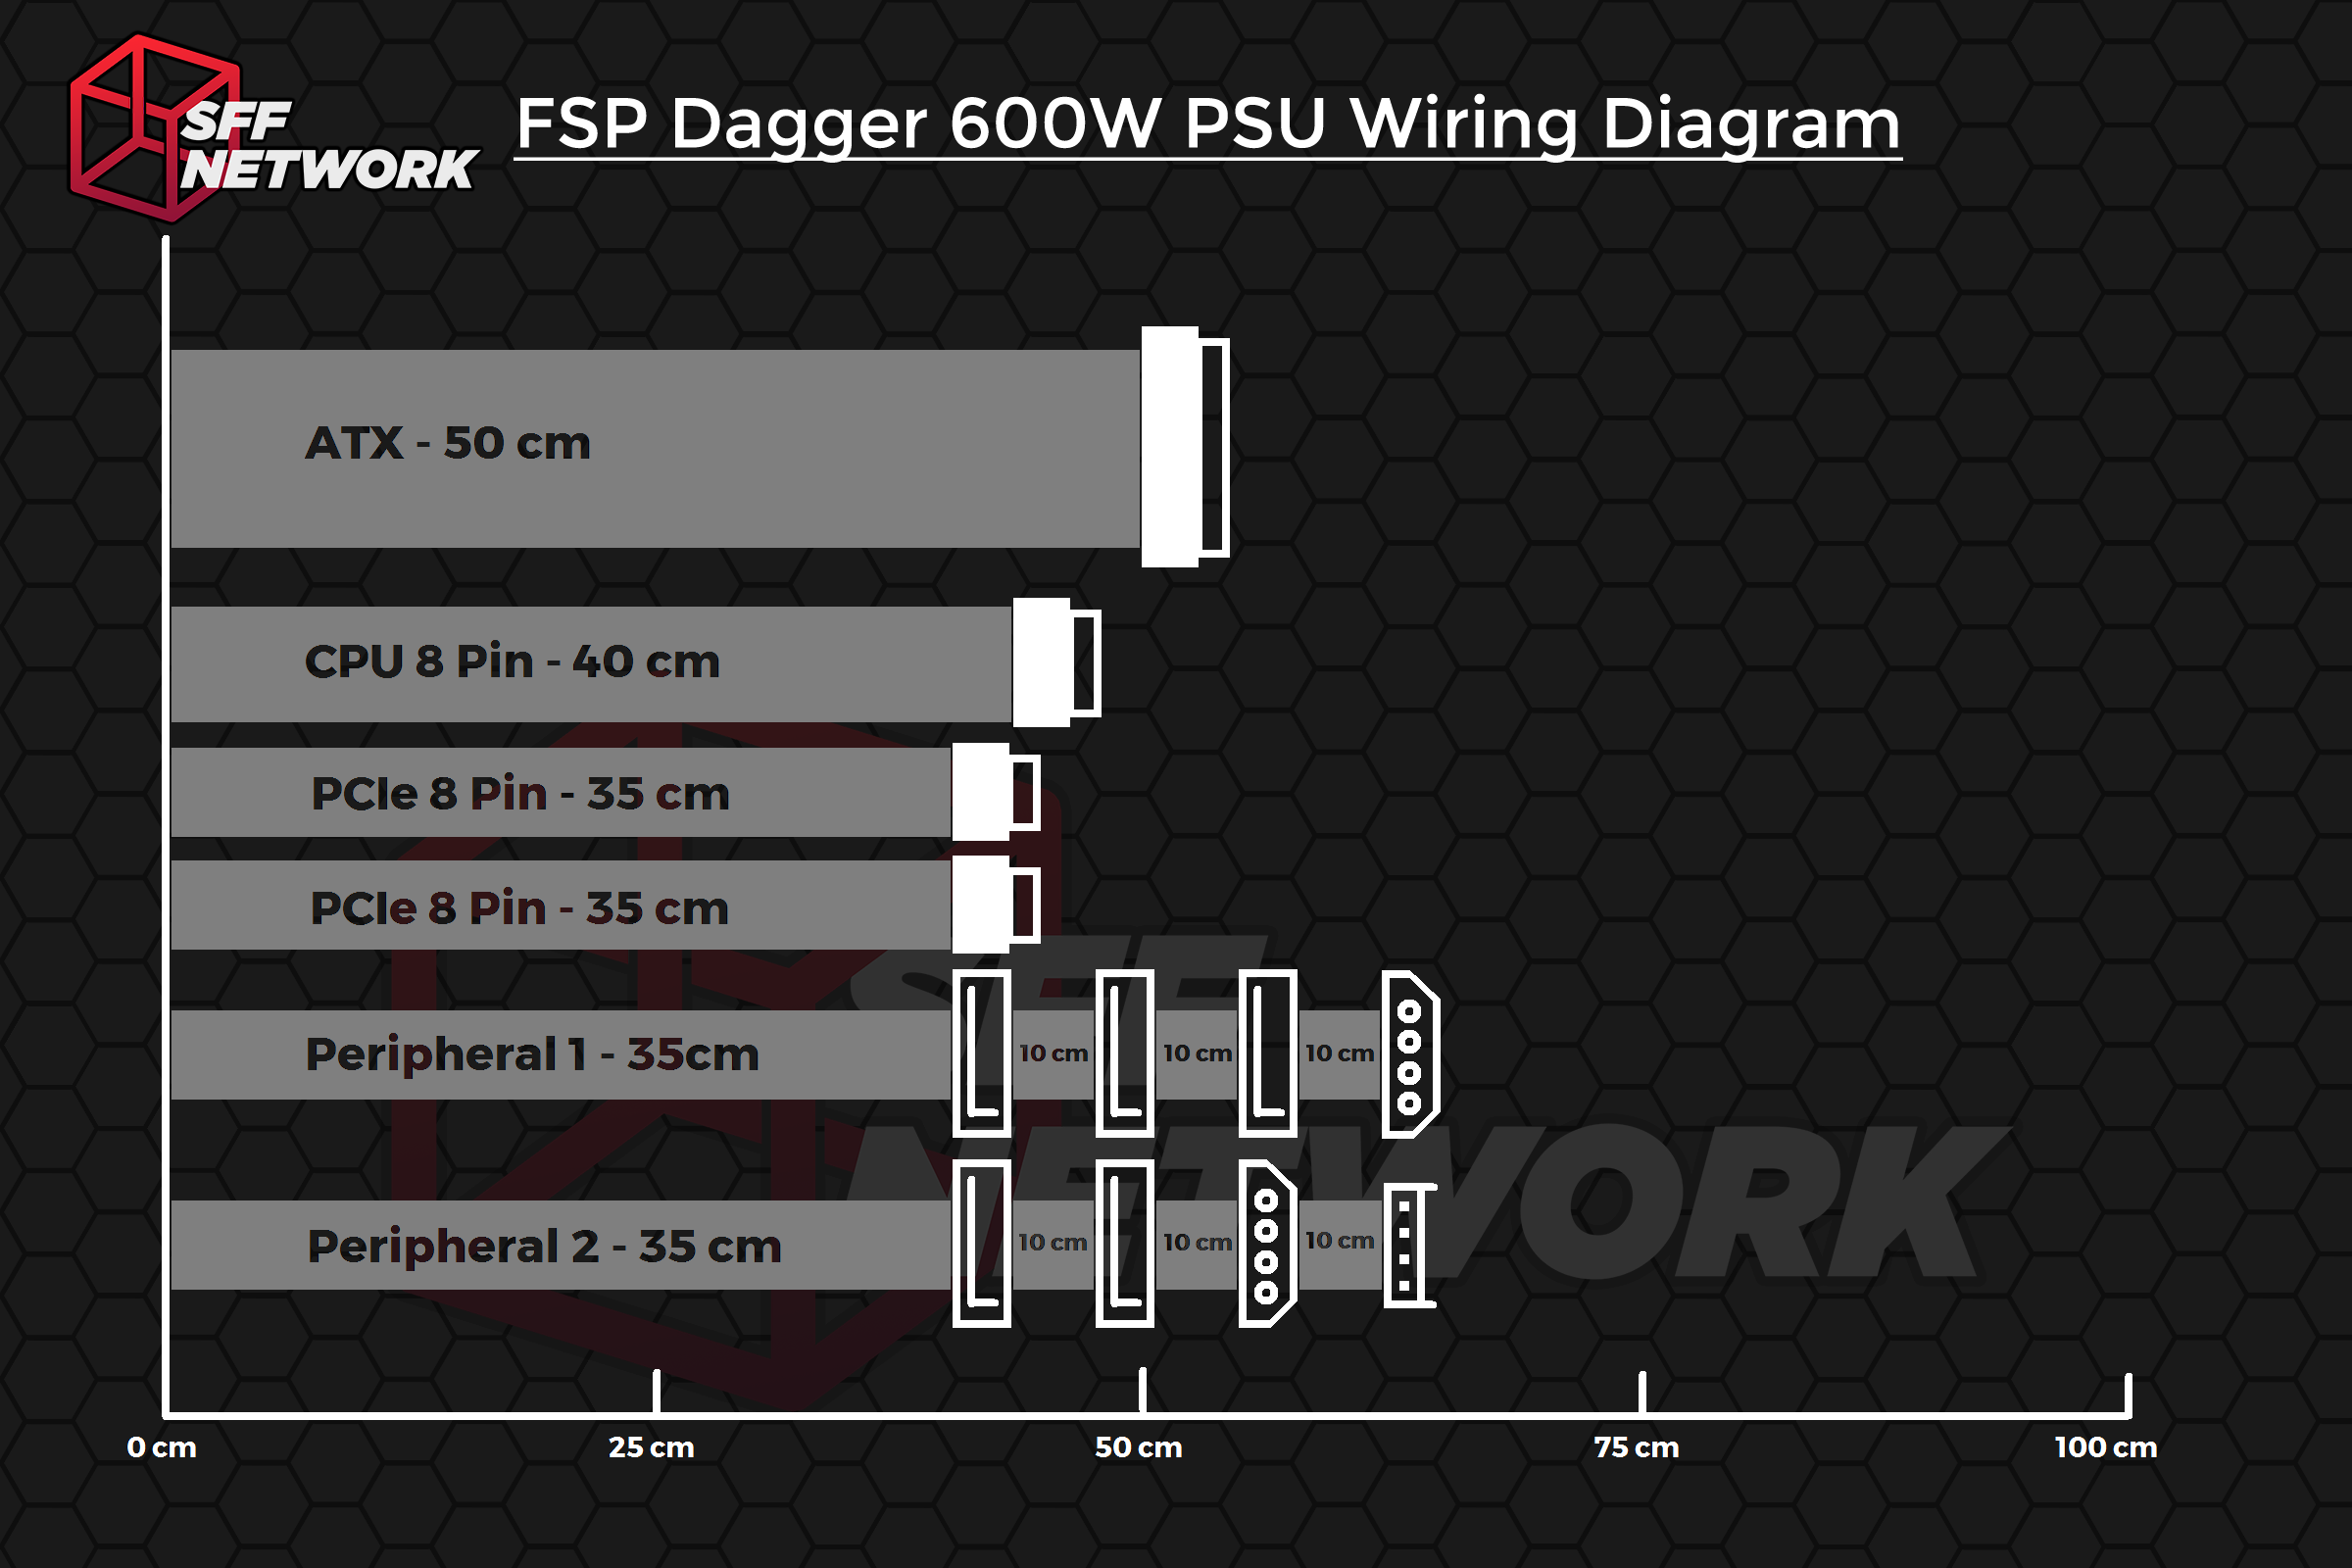 Fsp Dagger 600w A Stab In The Dark Small Form Factor Network Cpu Connector Wiring Diagram I Am Disappointed To See Inclusion Of Nearly Extinct Berg Floppy Drive On Cable As Well 4 Pin Peripheral Molex